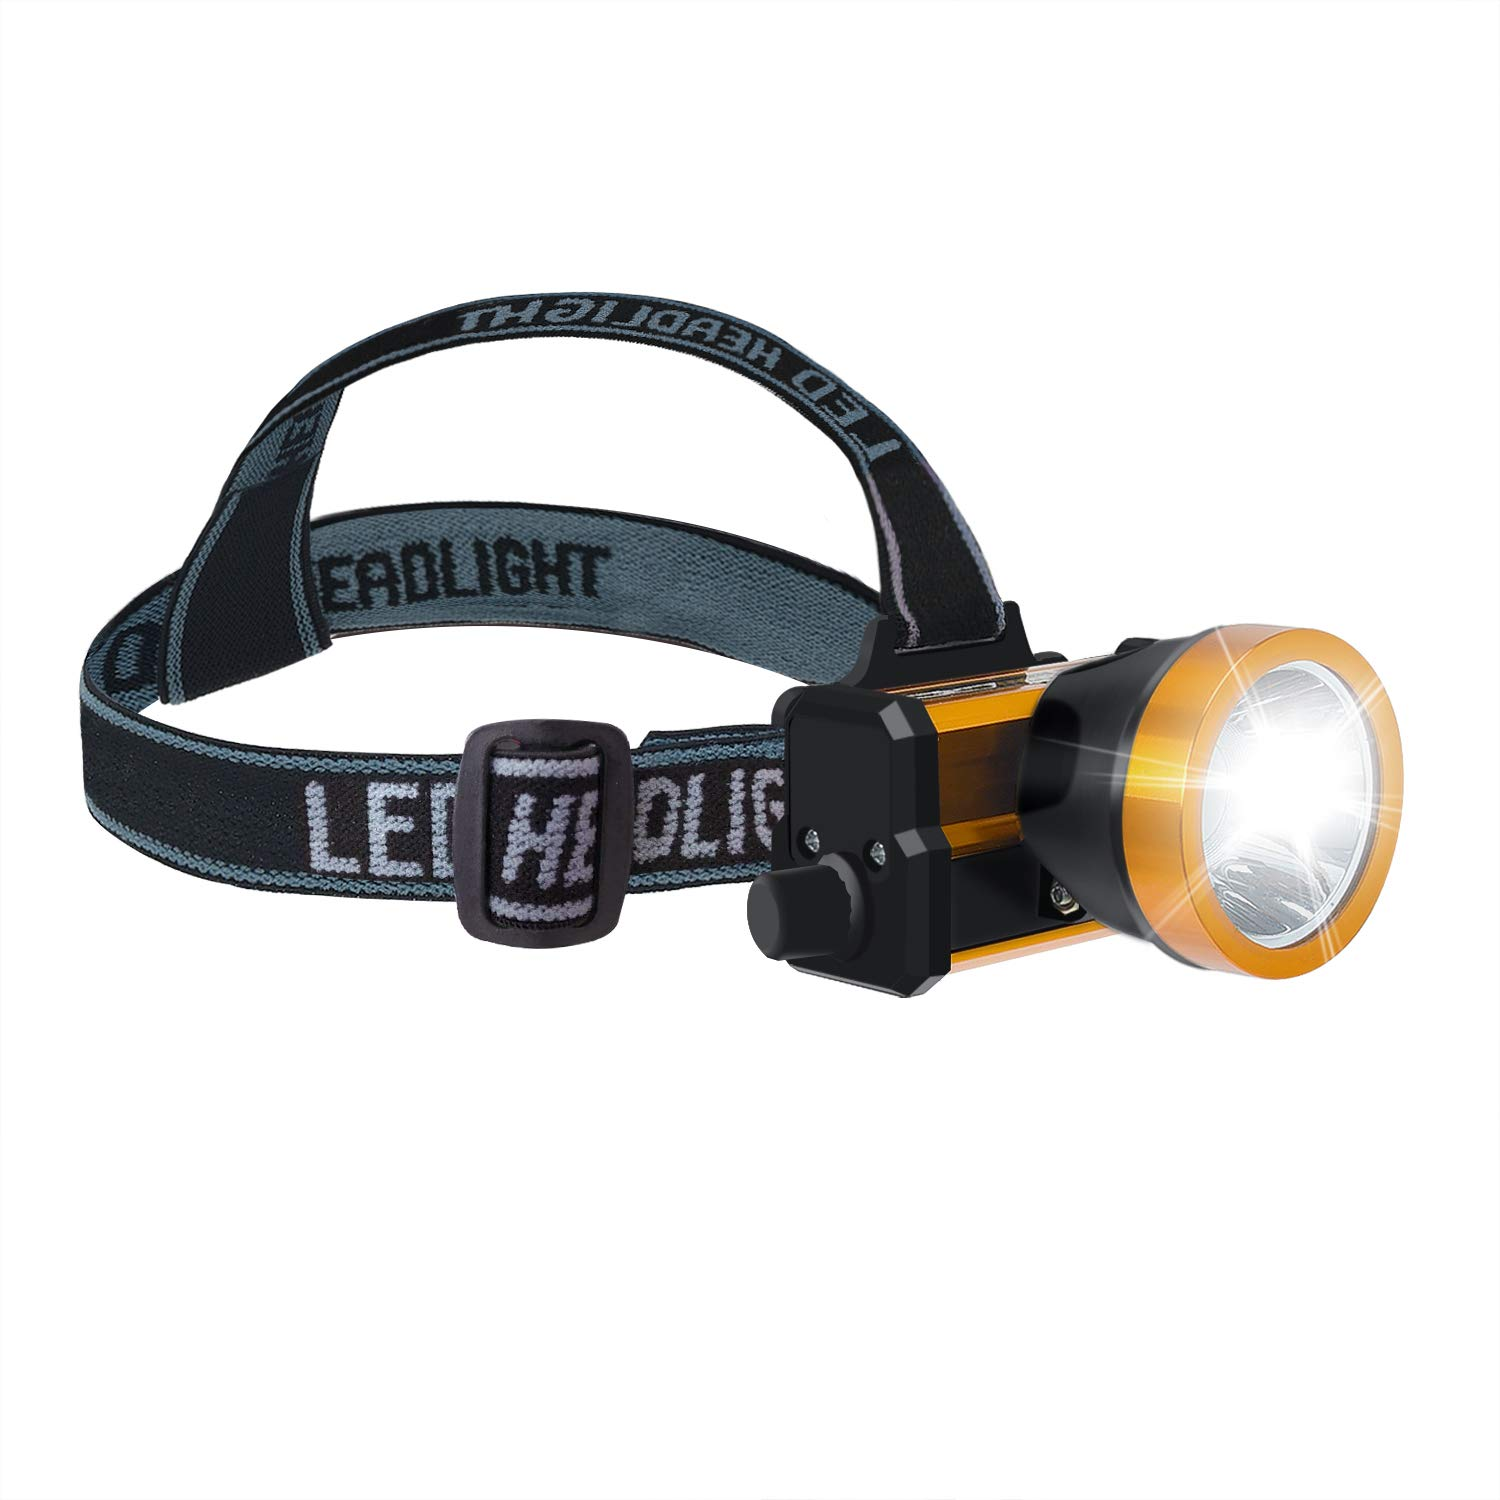 Haoer LED Rechargeable Headlight dimming Head Light Aluminum Alloy headlamp